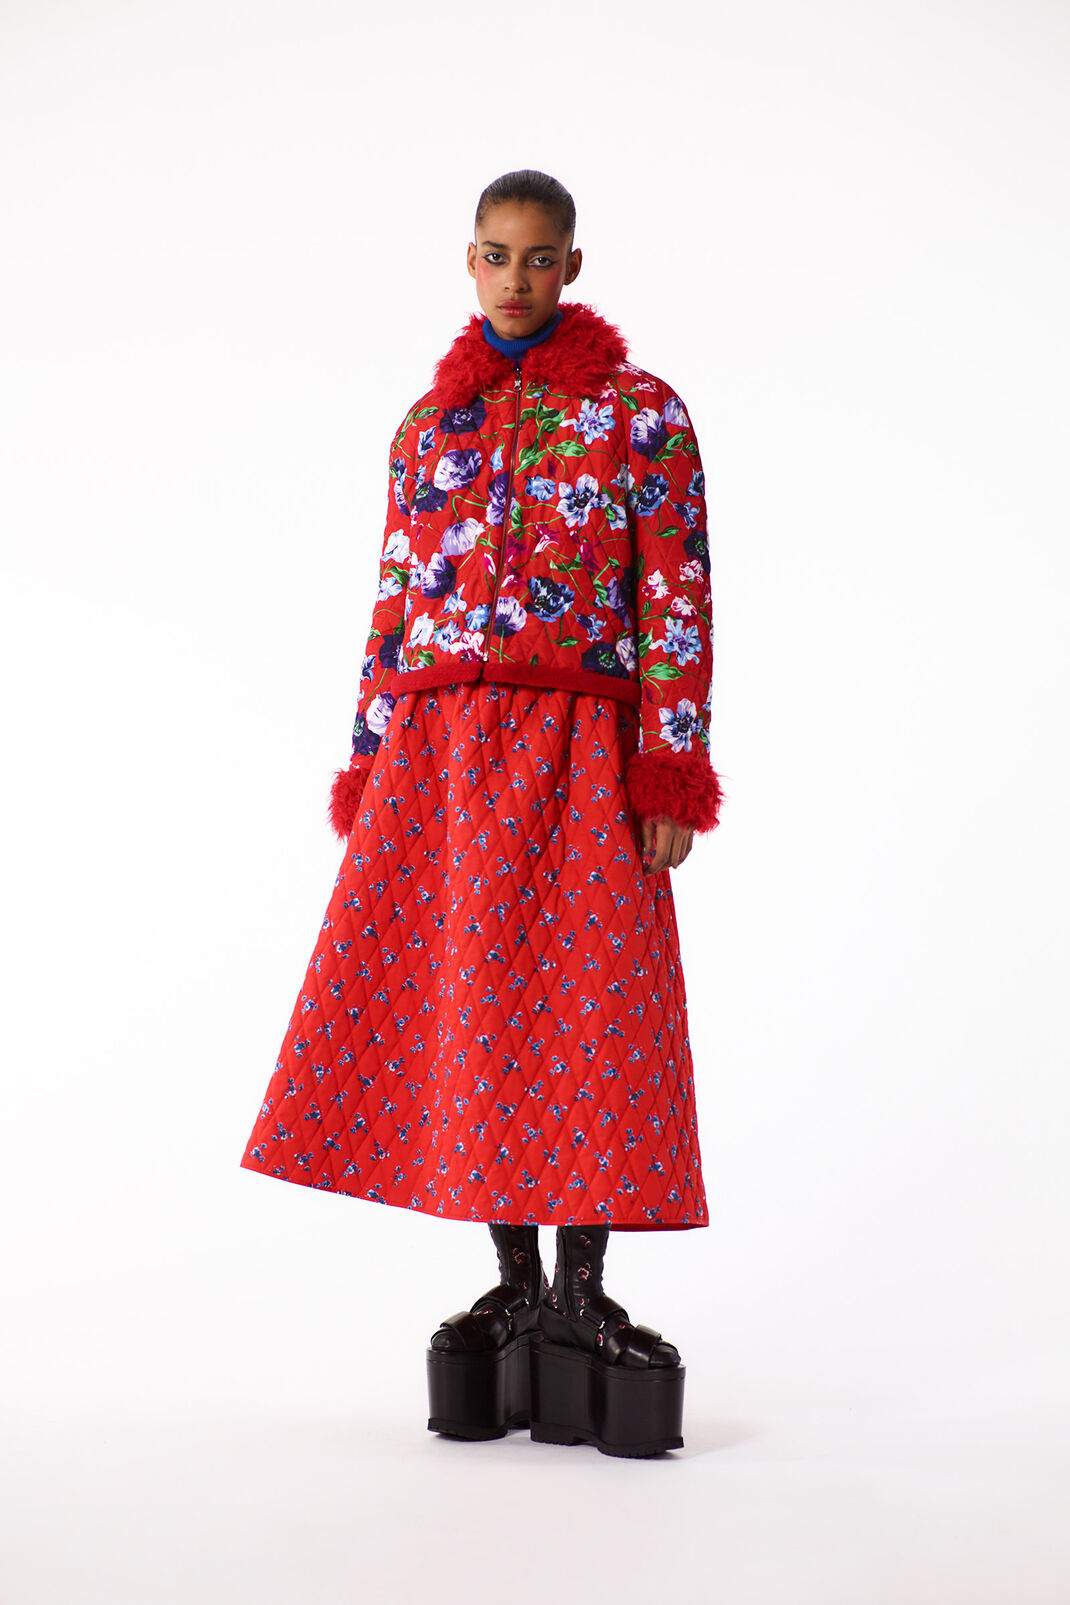 MEDIUM RED Padded 'Wild Flowers' Jacket for women KENZO